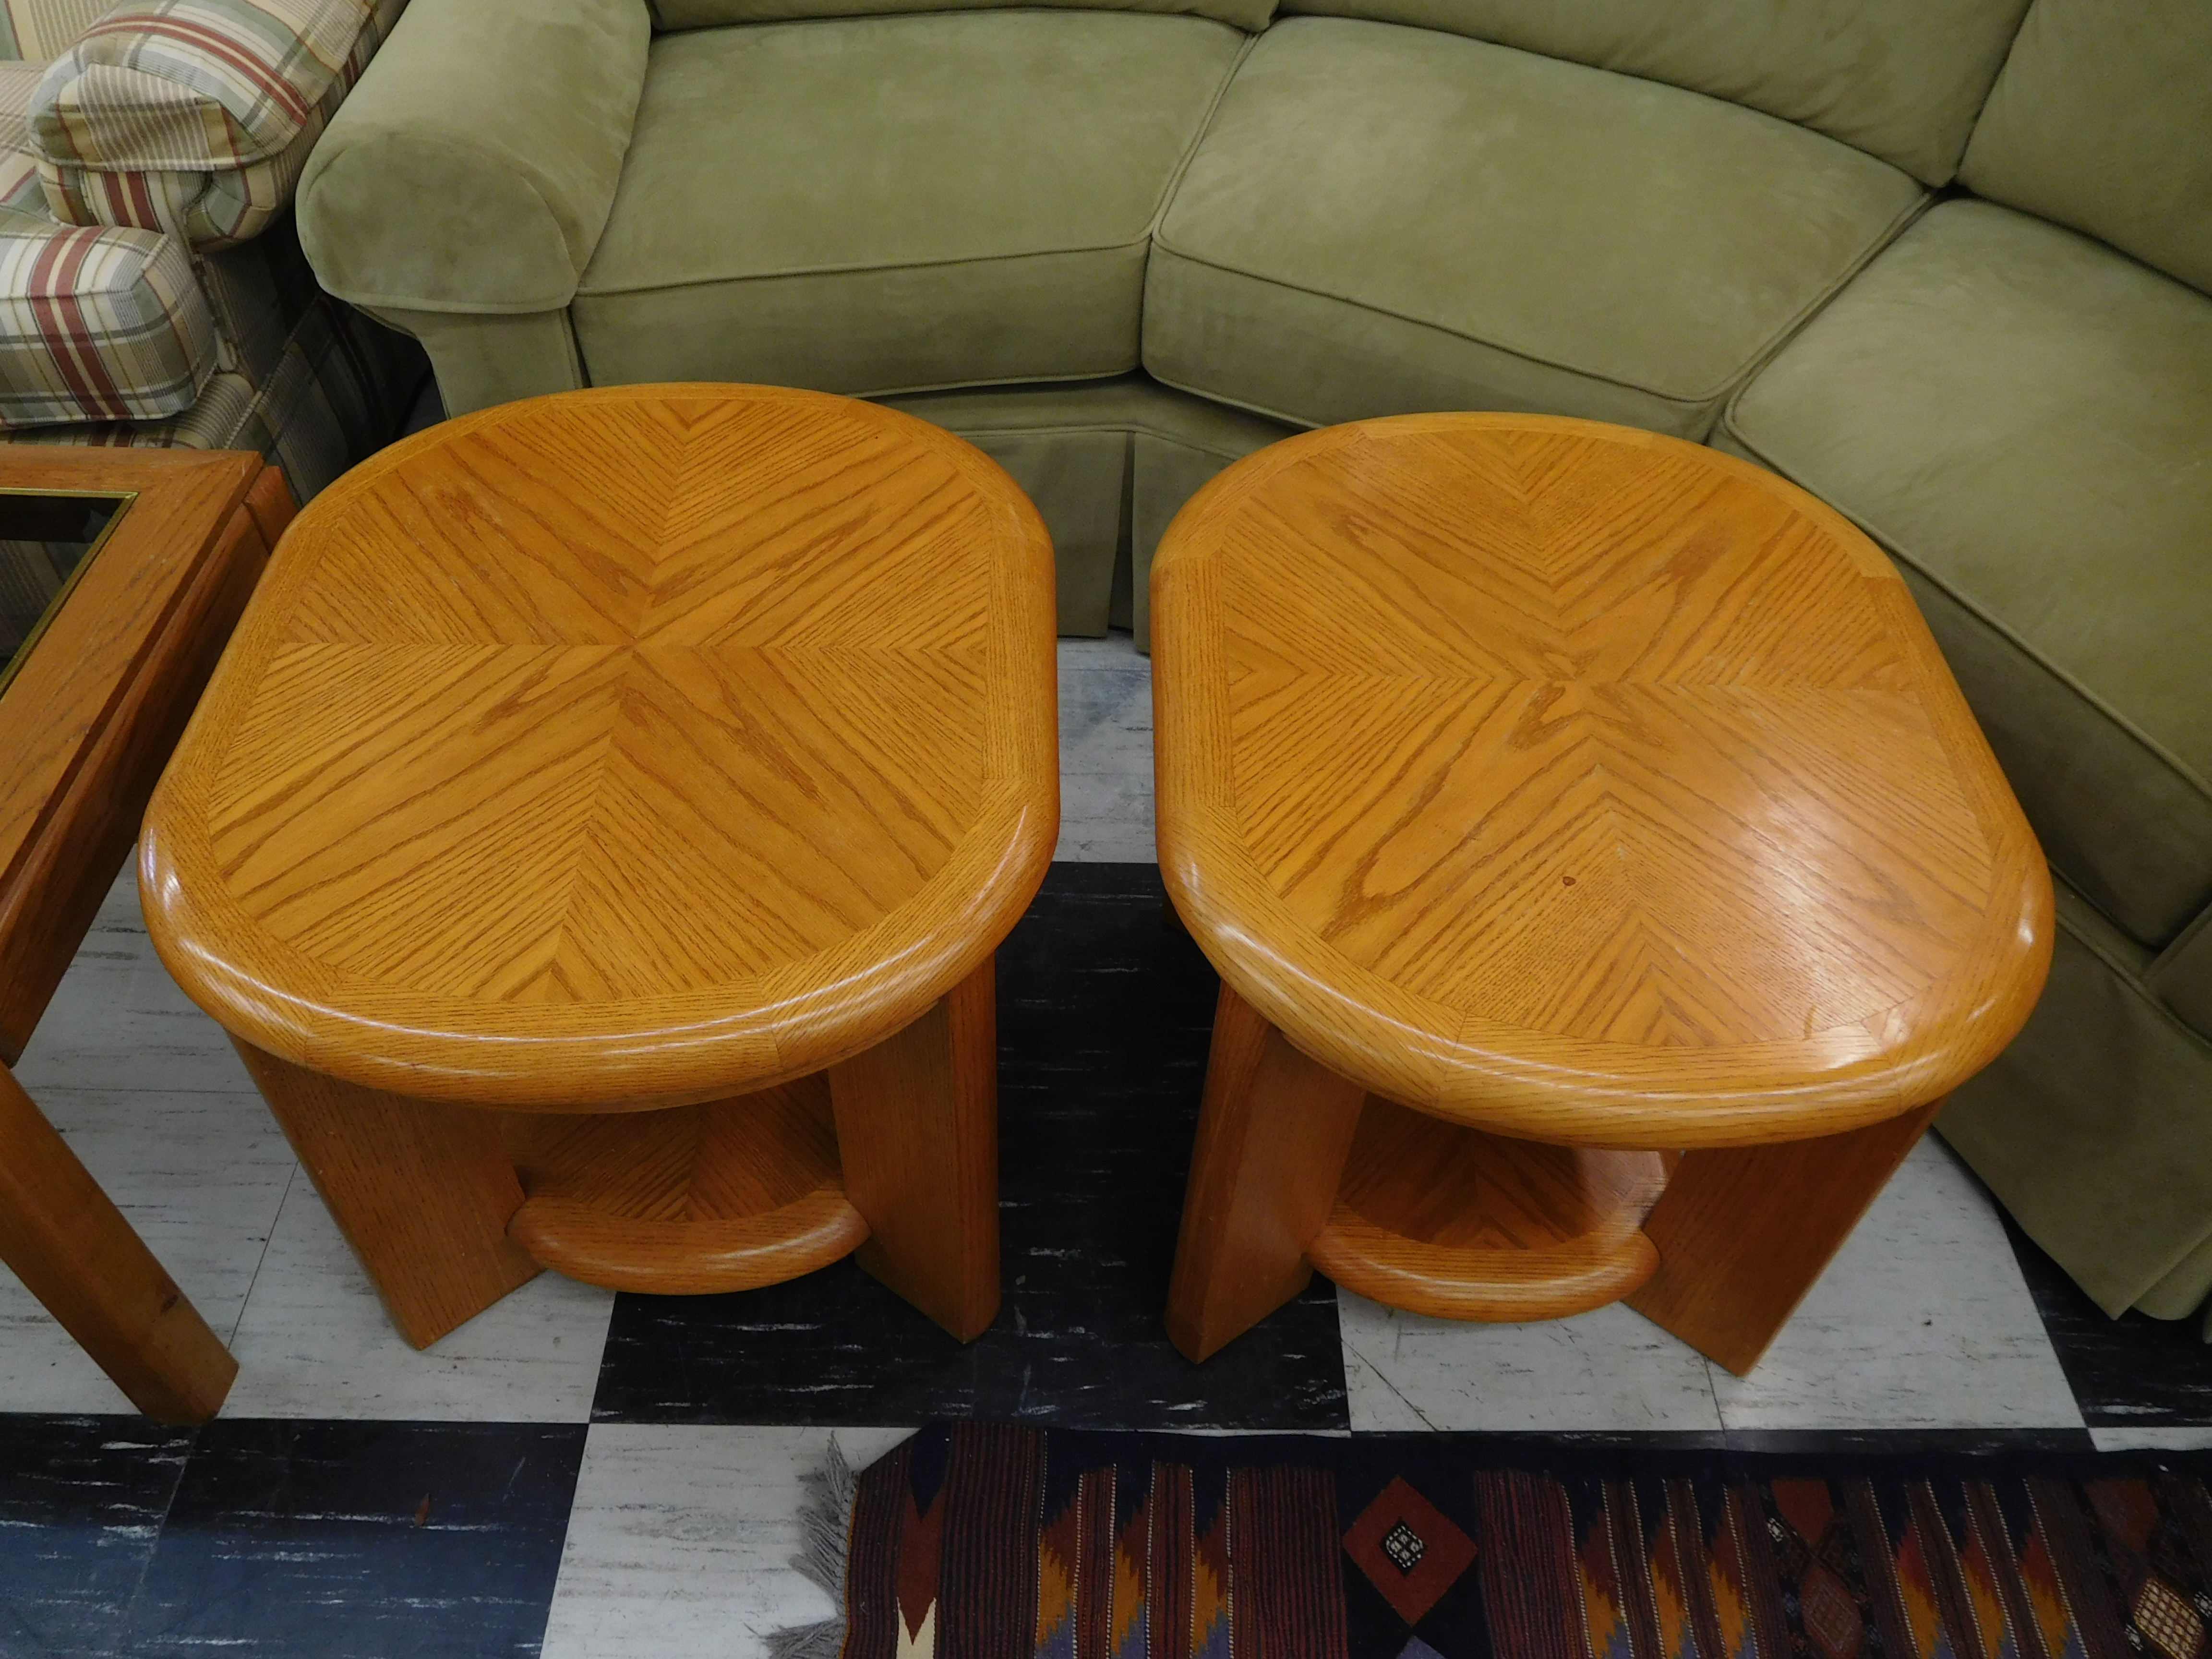 Modern Oval Golden Oak End Table in Immaculate Condition!